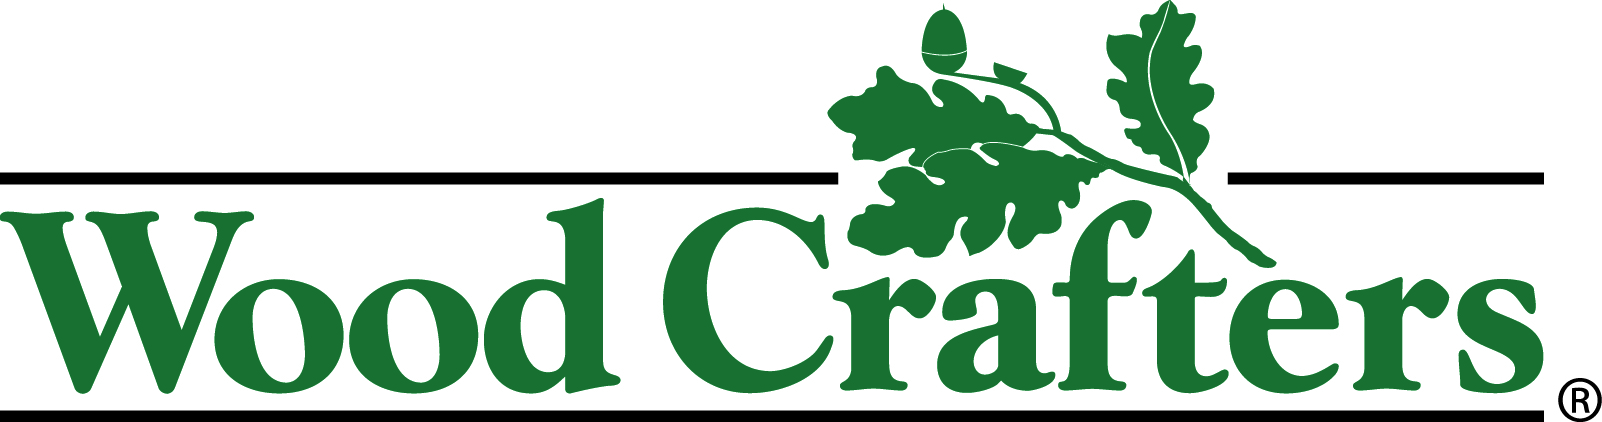 Wood Crafters logo